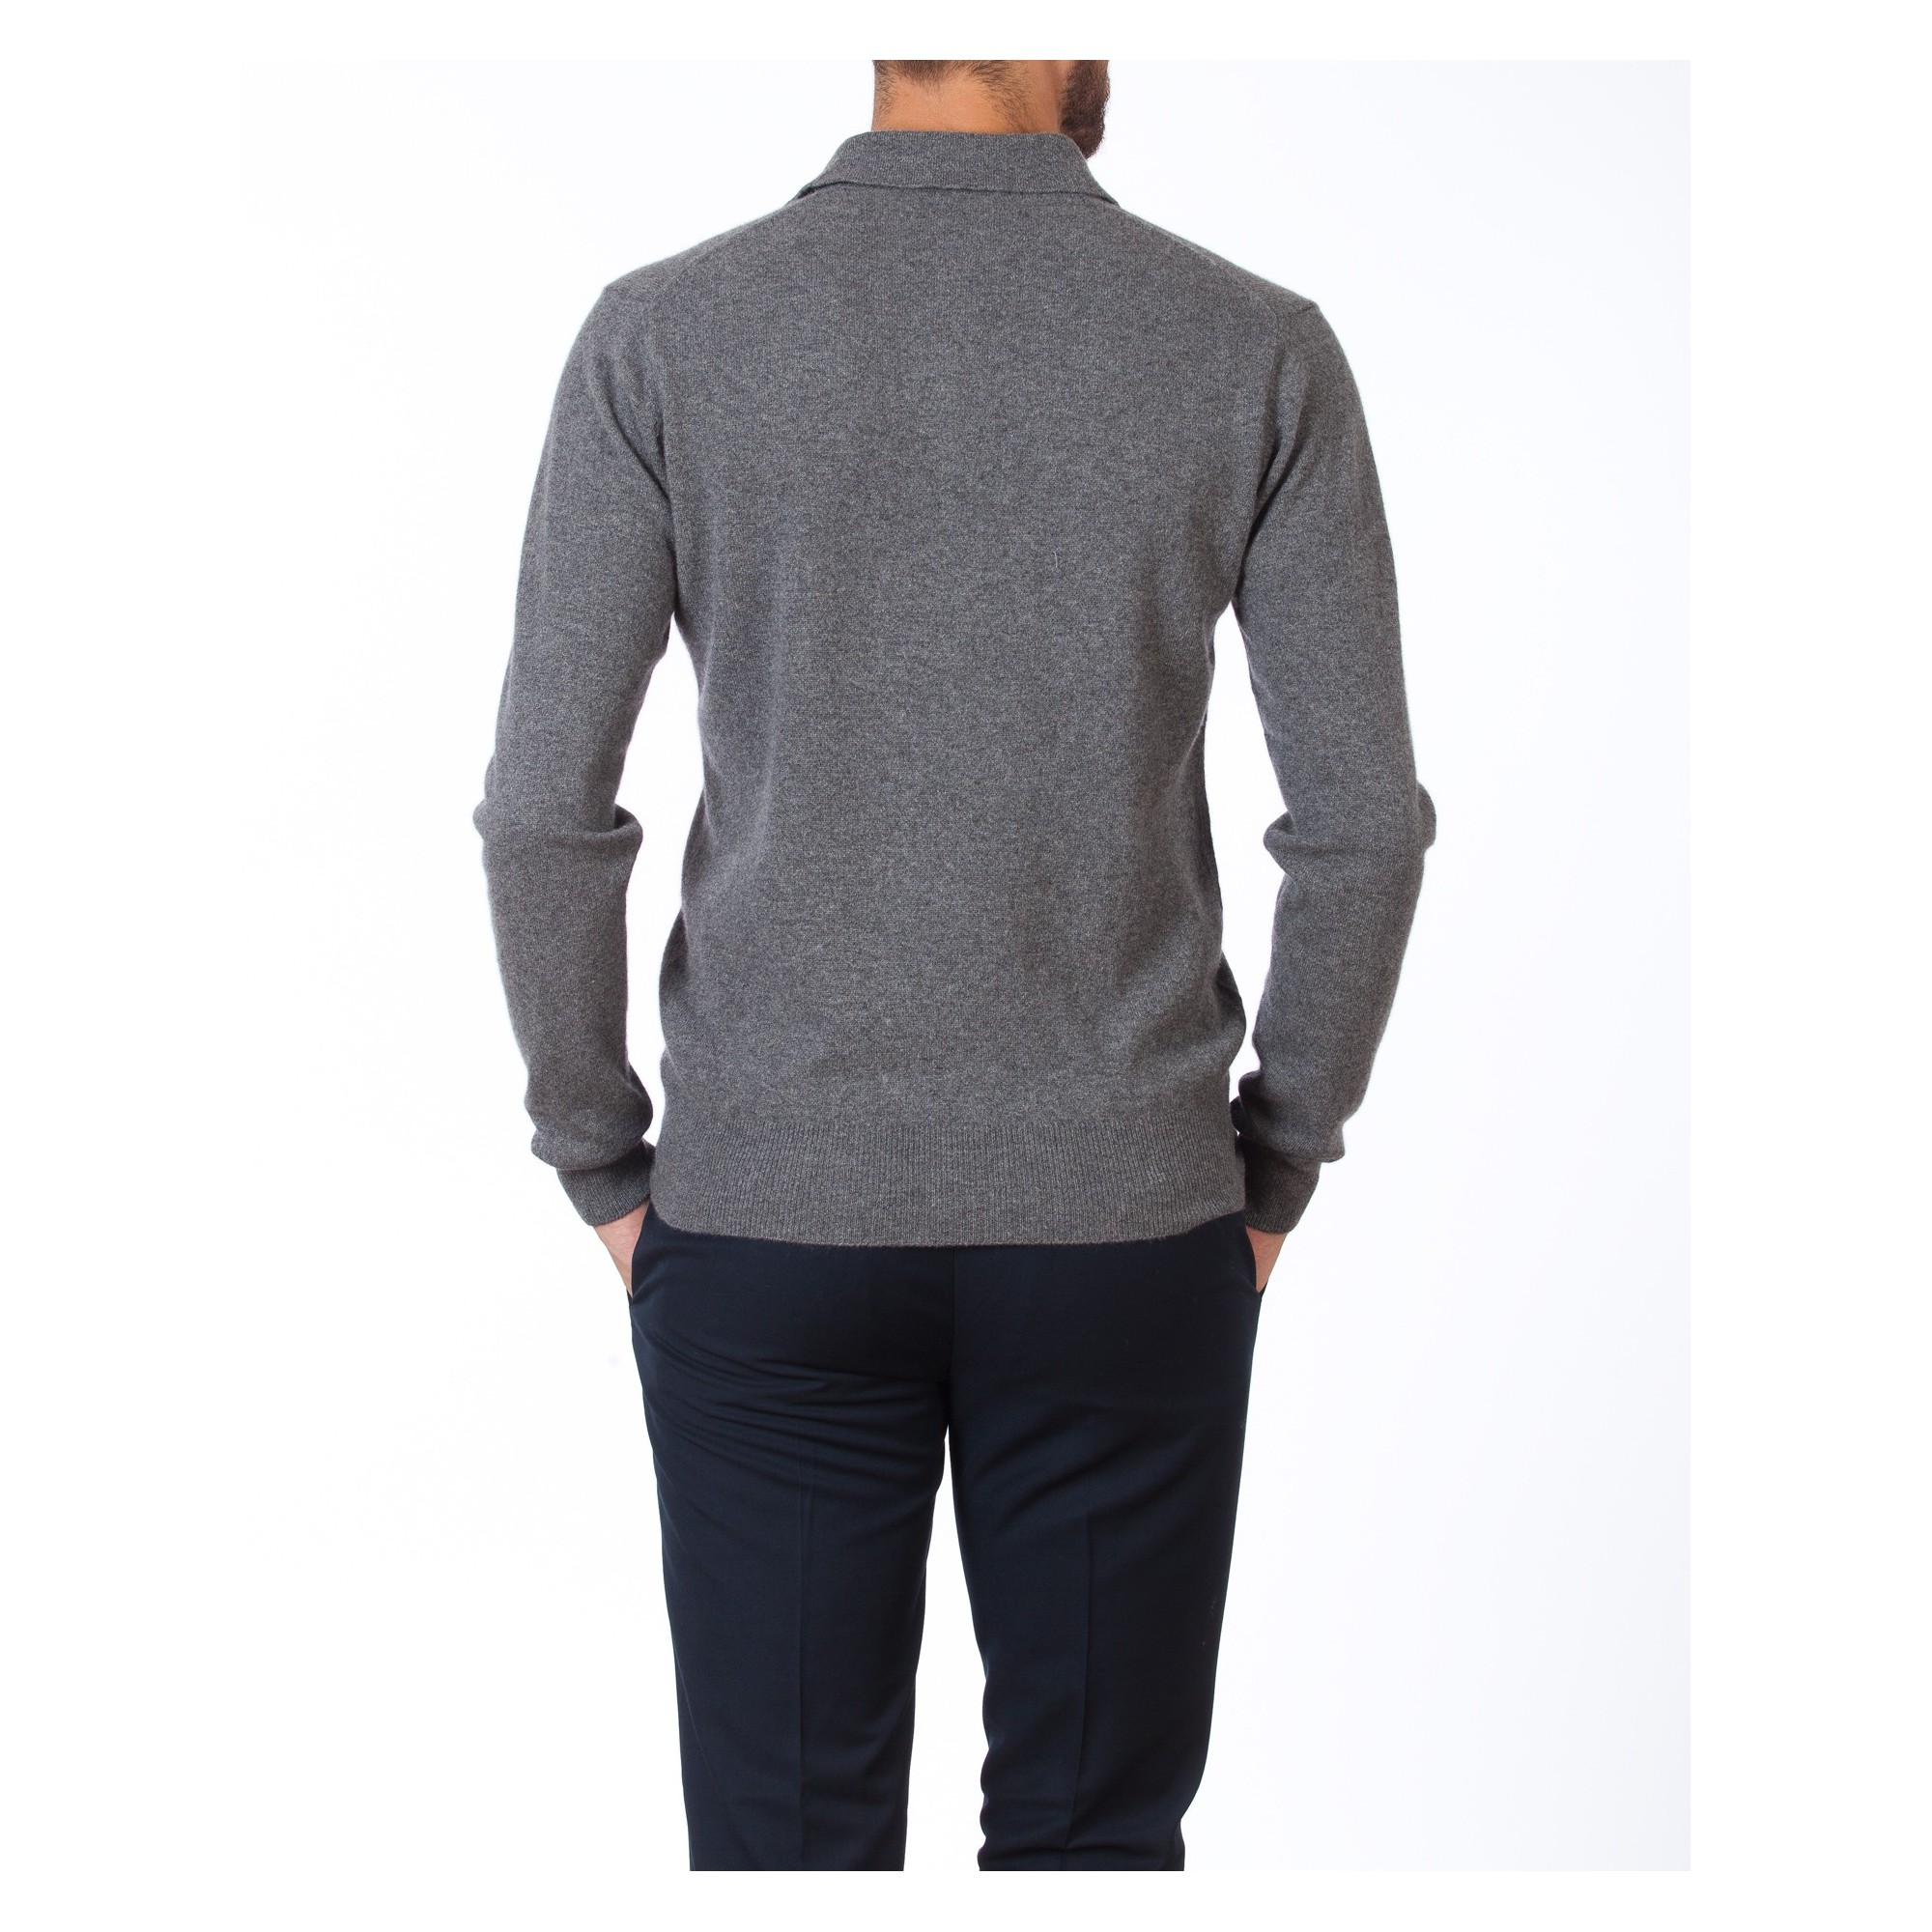 Cashmere is a timeless piece of clothing that cannot be compensated in quality.